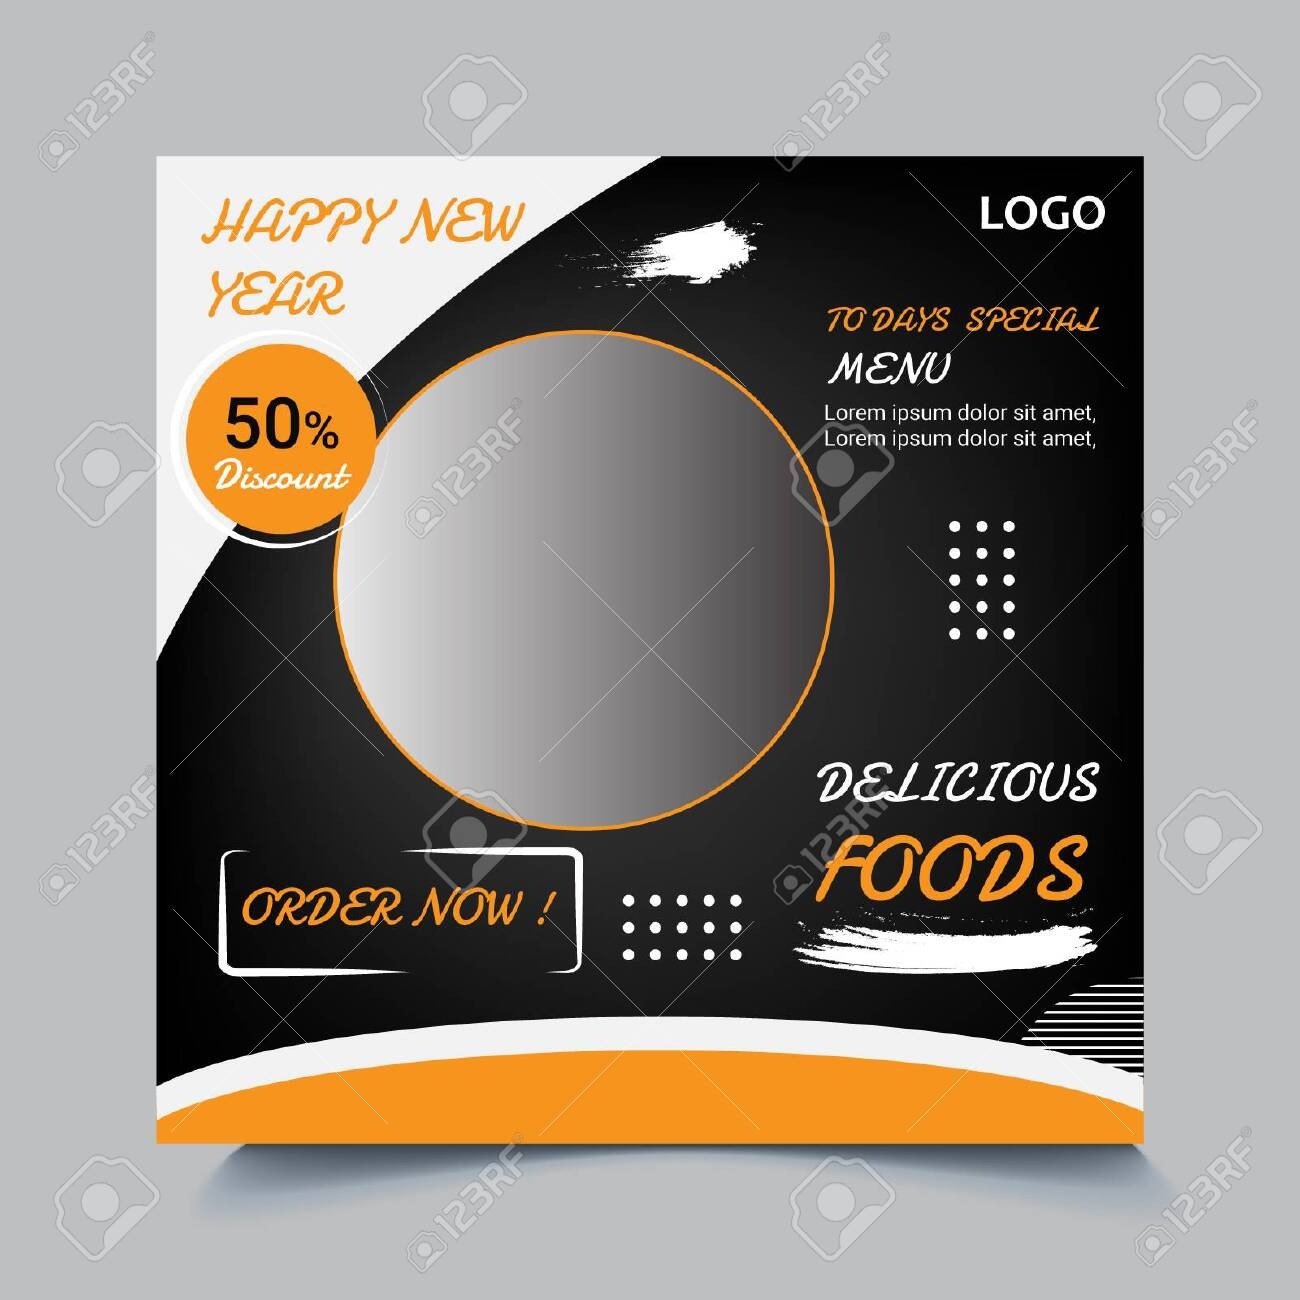 Social Media Post Template Design For Food And Restaurant Royalty Free Cliparts Vectors And Stock Illustration Image 137667817